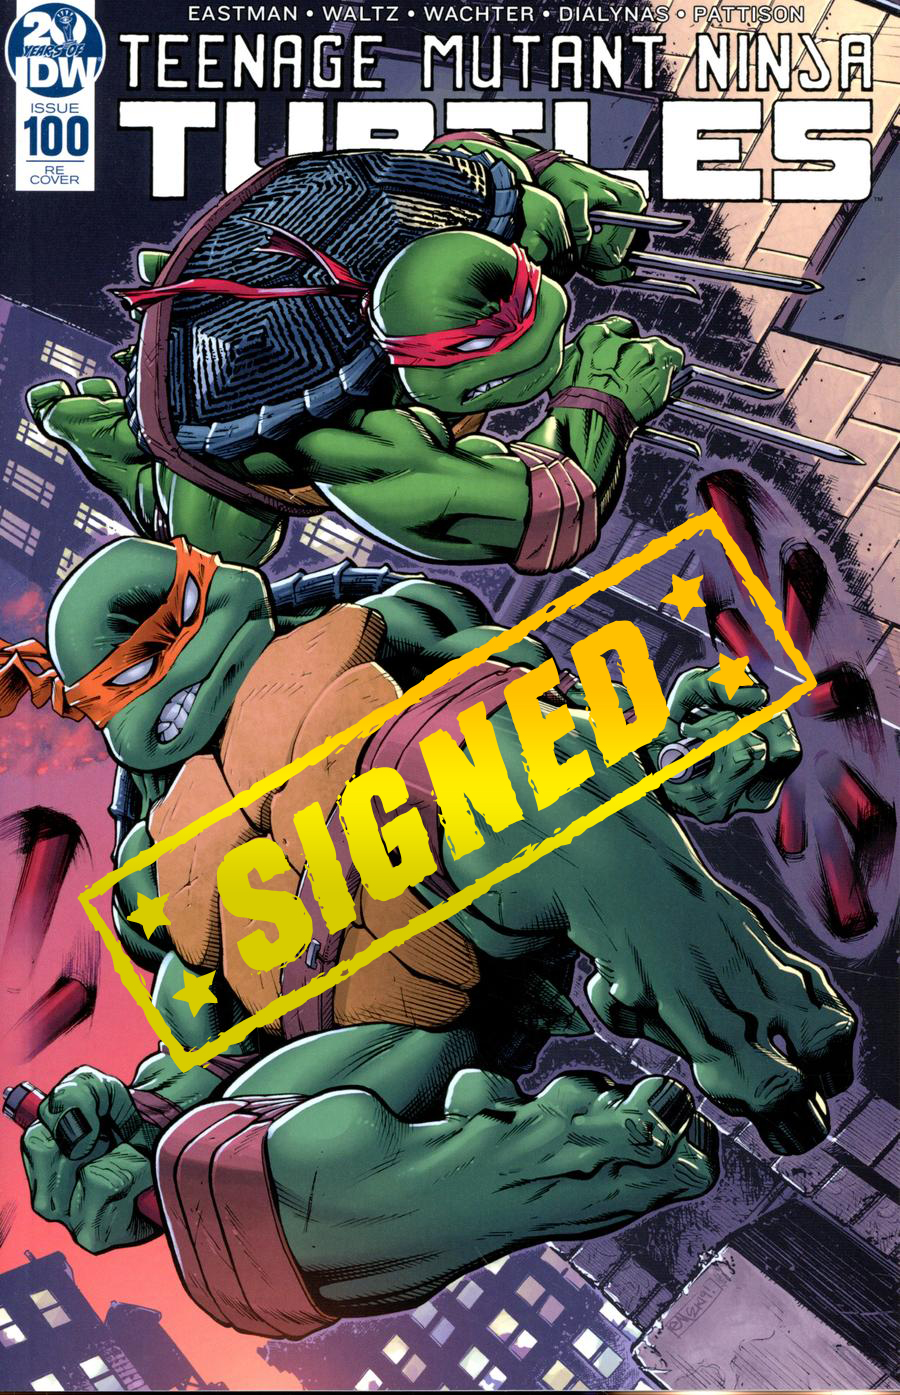 Teenage Mutant Ninja Turtles Vol 5 #100  Midtown Exclusive Cover D Ed McGuinness Wraparound Variant Cover Signed By Ed McGuinness